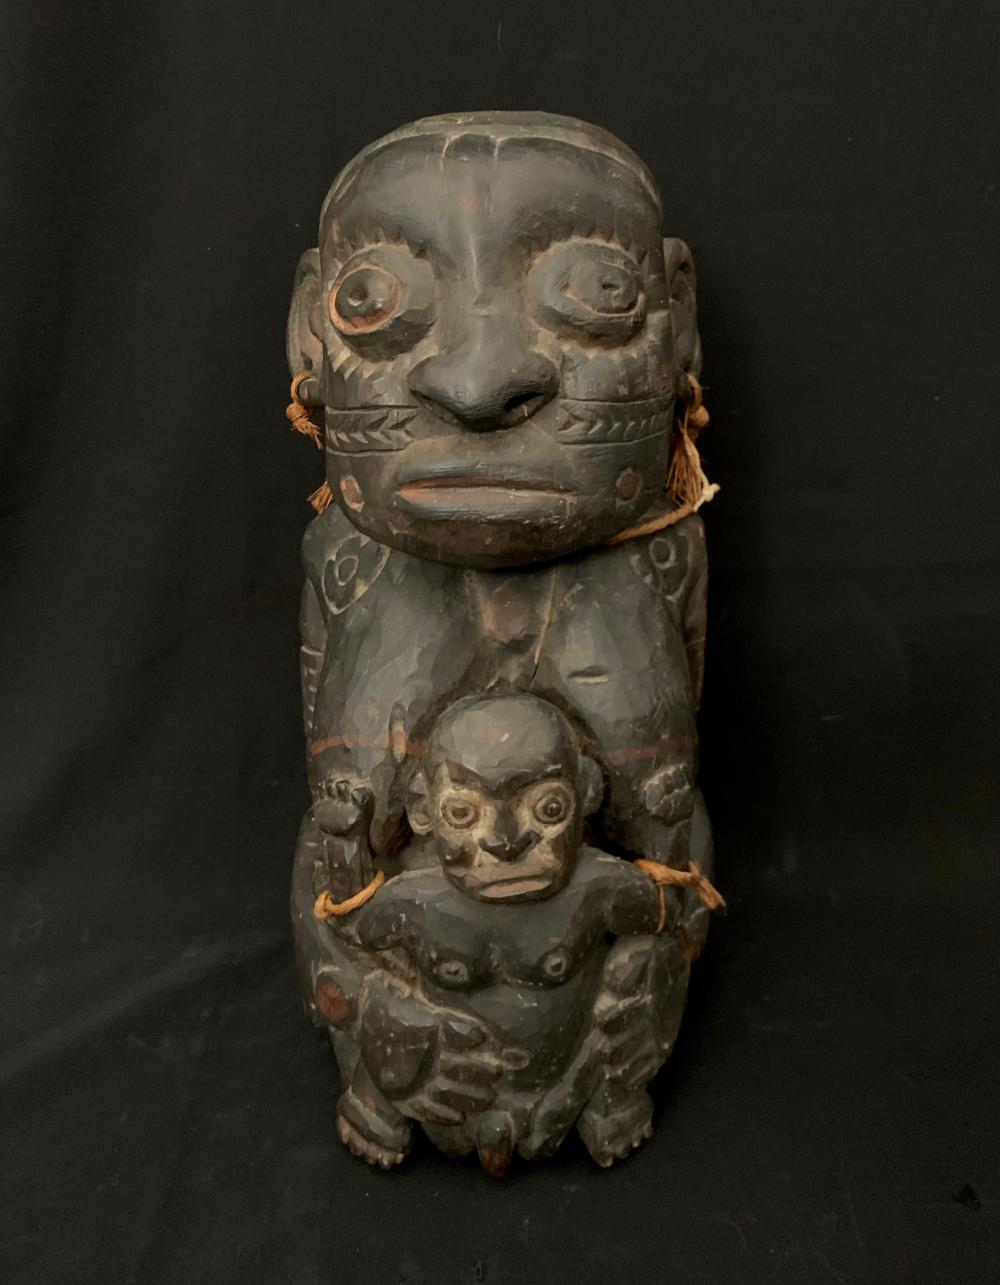 An Ancestral Figure of Mother and Child, Kambot Village, Sepik River Region, Papua New Guinea